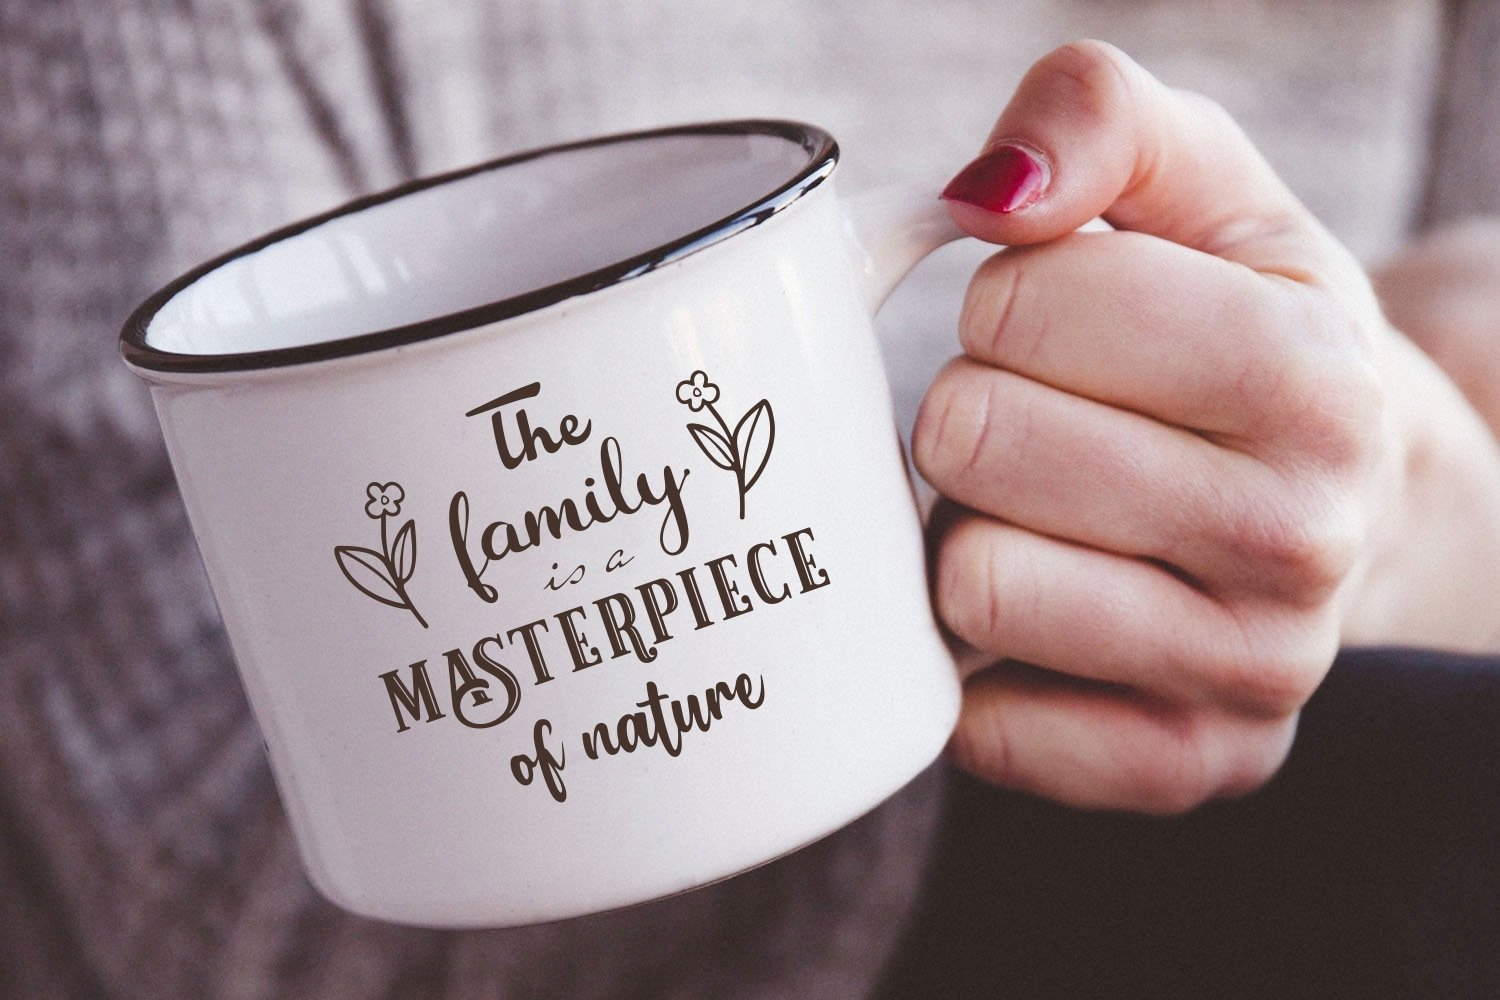 The family is a masterpiece of nature svg Family Quote example image 2